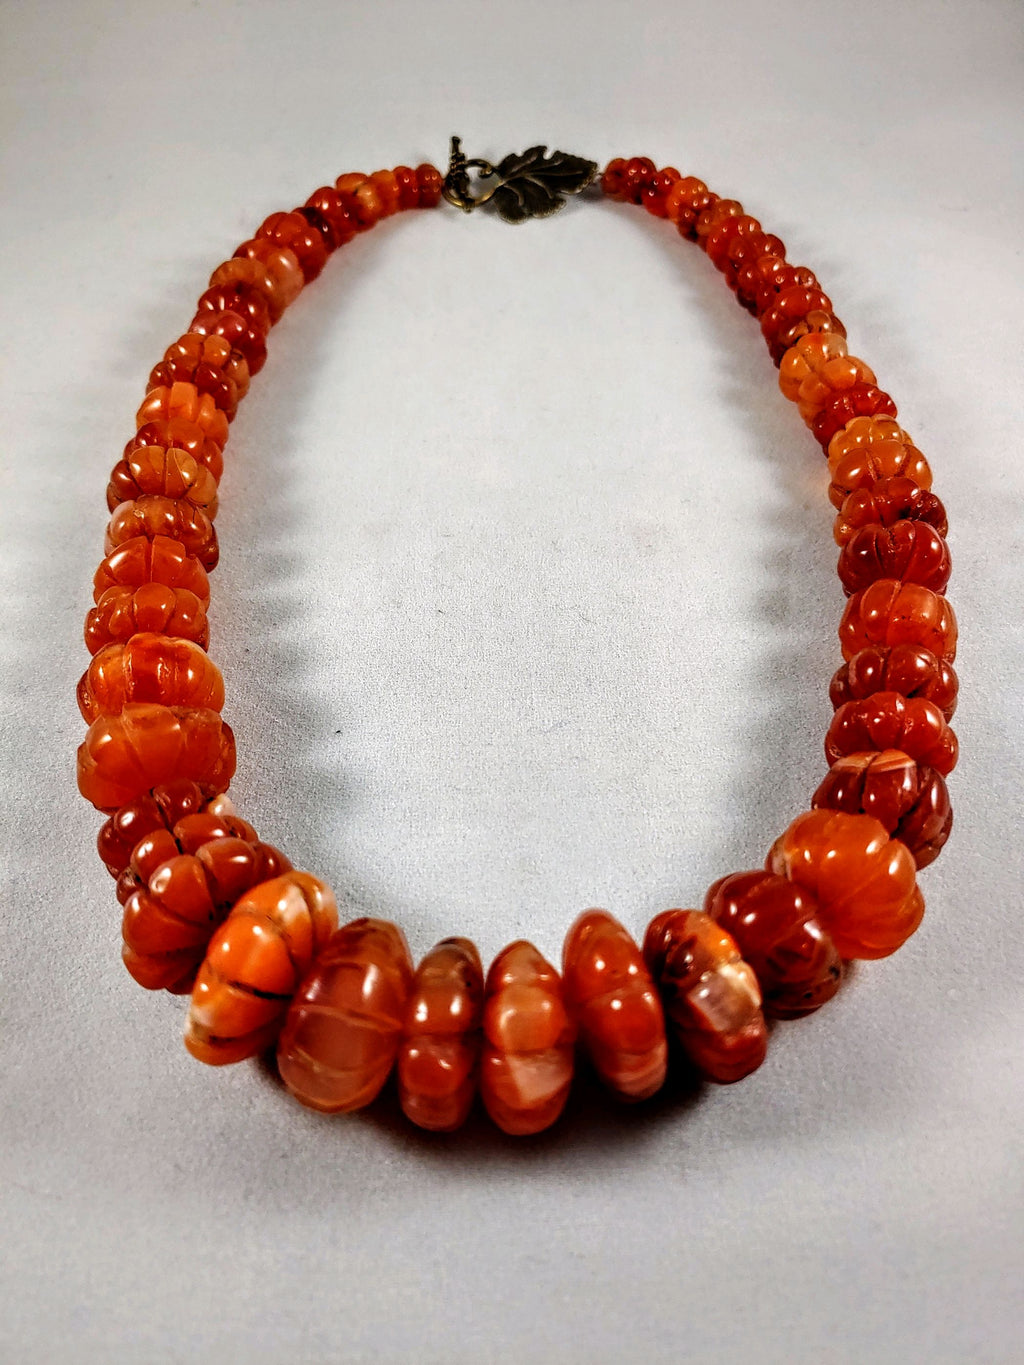 Carnelian Carved Large Stones Graduated Necklace